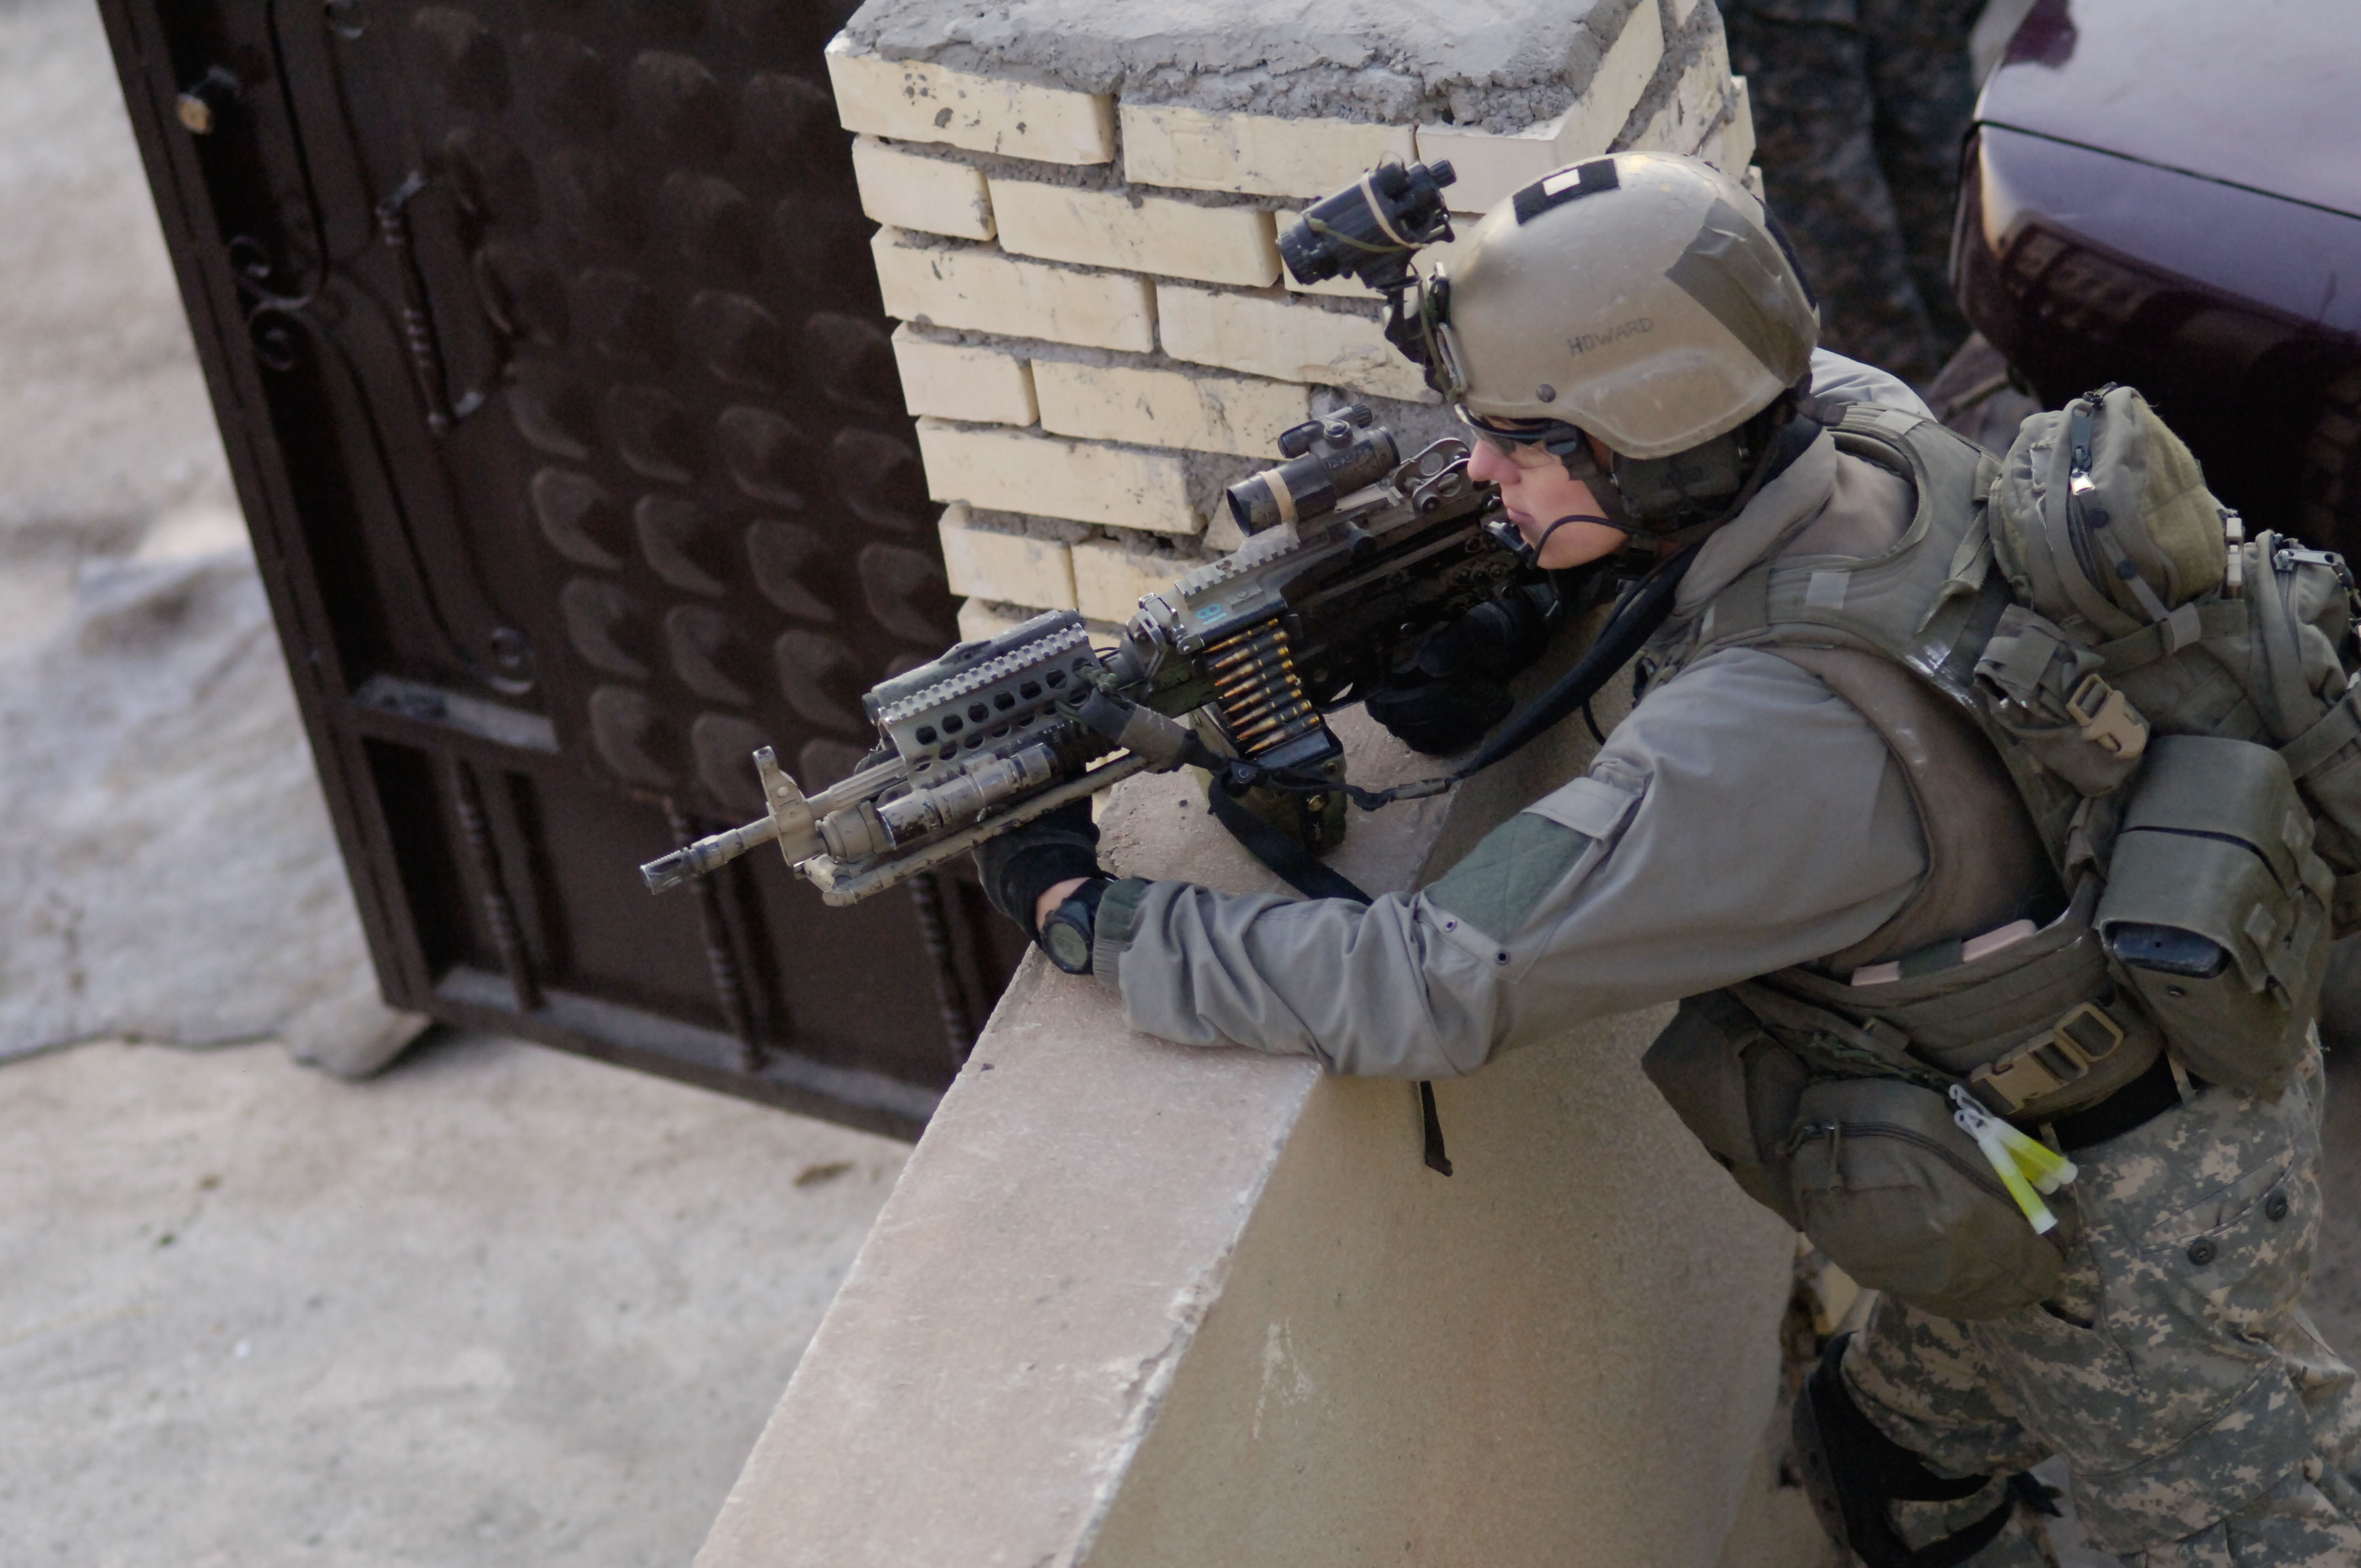 U.S._Army_Ranger,_2nd_Battalion,_75th_Ranger_Regiment_providing_Overwatch_in_Iraq_2009